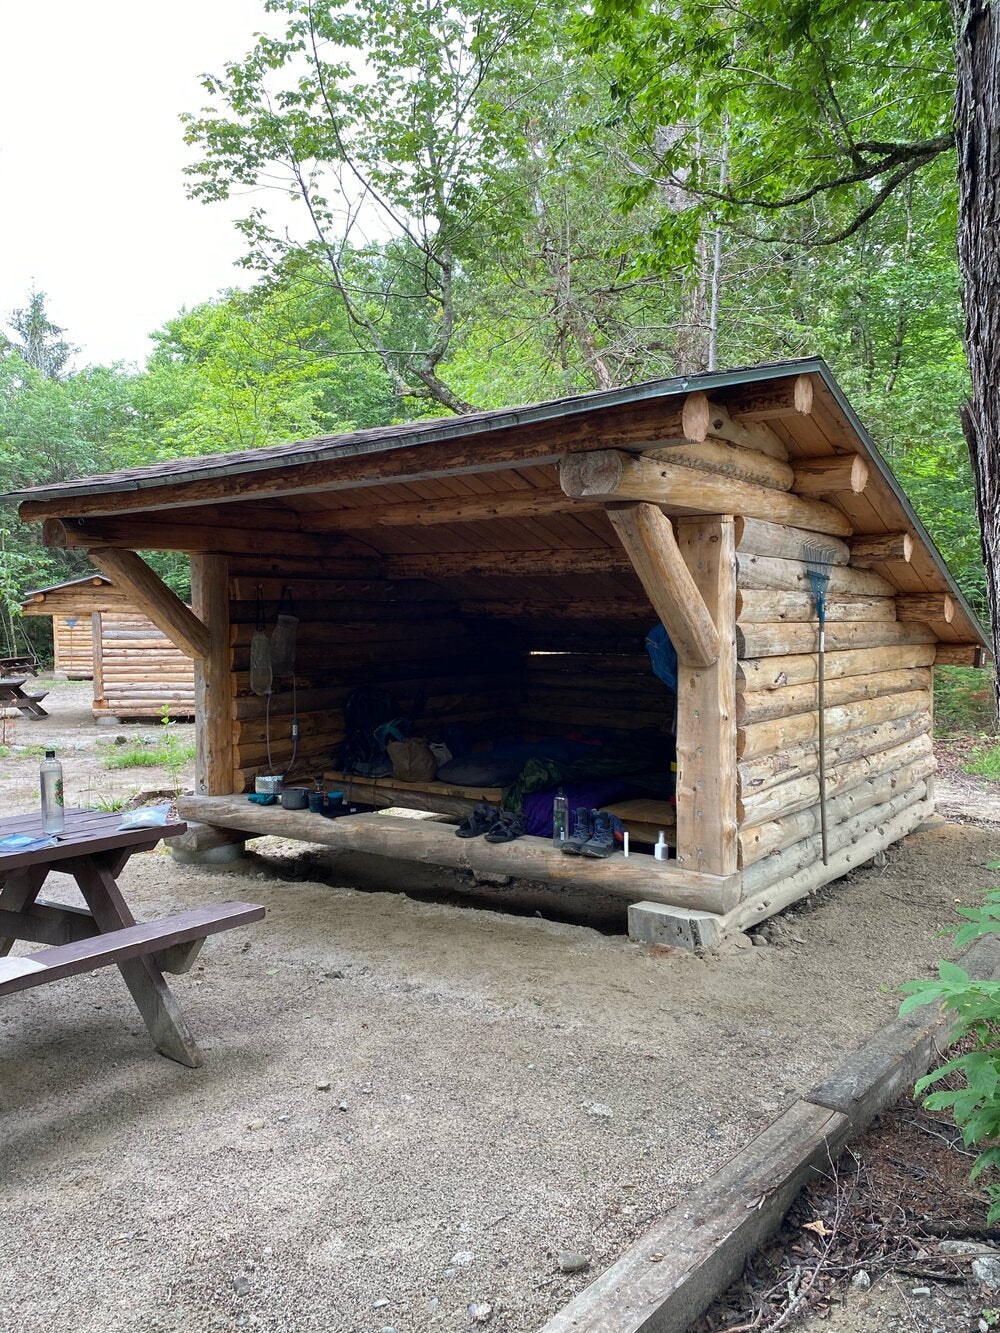 Our lean-to home for a day and night as we waited for better weather